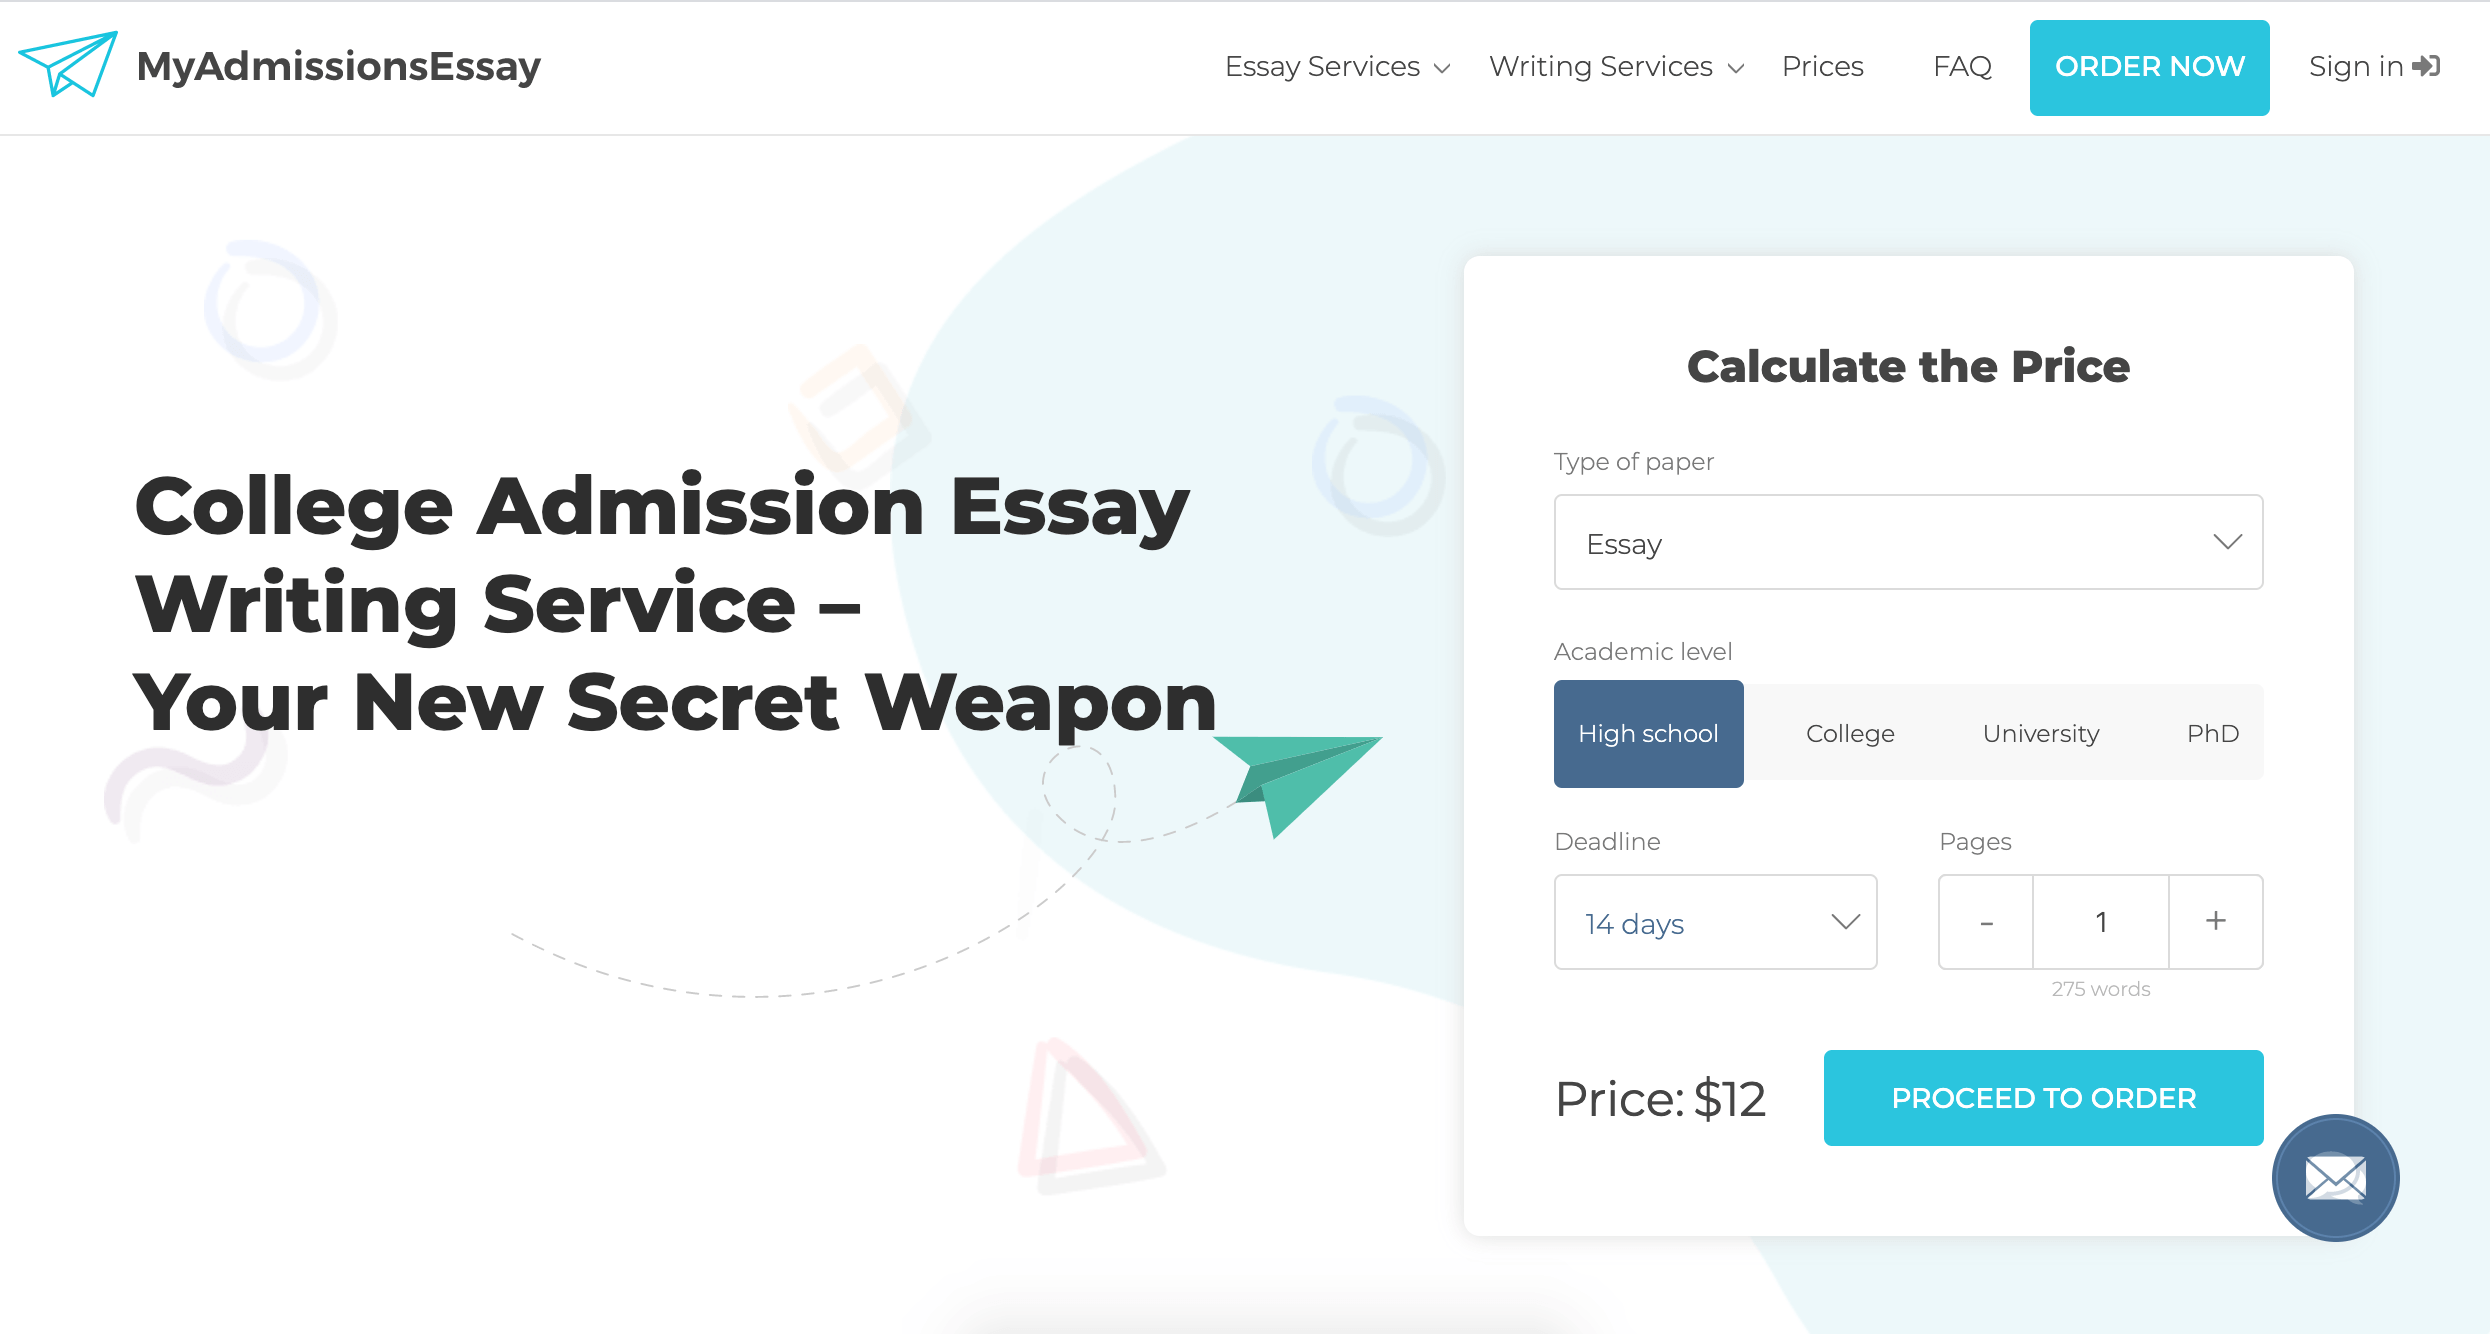 myadmissionsessay.com review